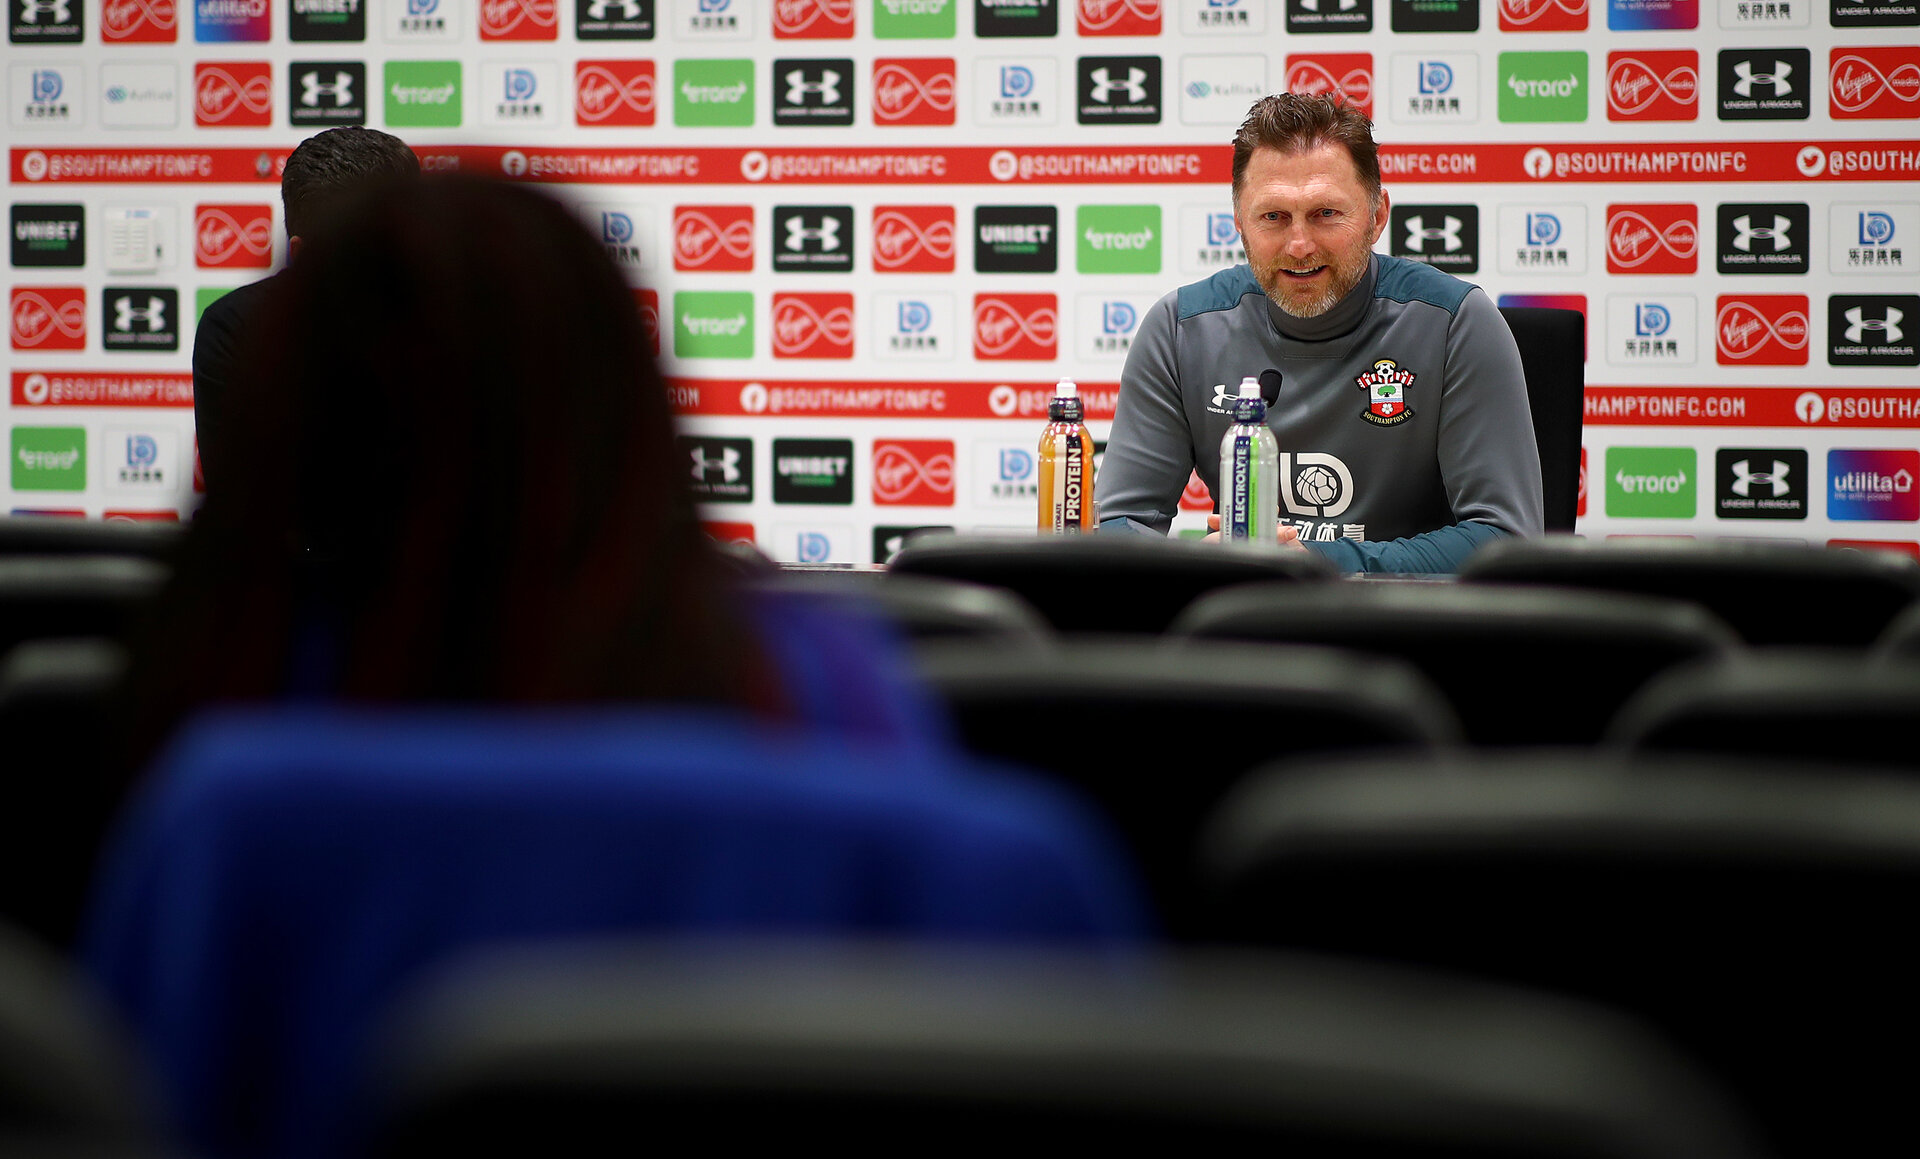 SOUTHAMPTON, ENGLAND - JANUARY 16: Manager Ralph Hasenhuttl during a Southampton FC press conference at the Staplewood Campus on January 16, 2020 in Southampton, England. (Photo by Matt Watson/Southampton FC via Getty Images)